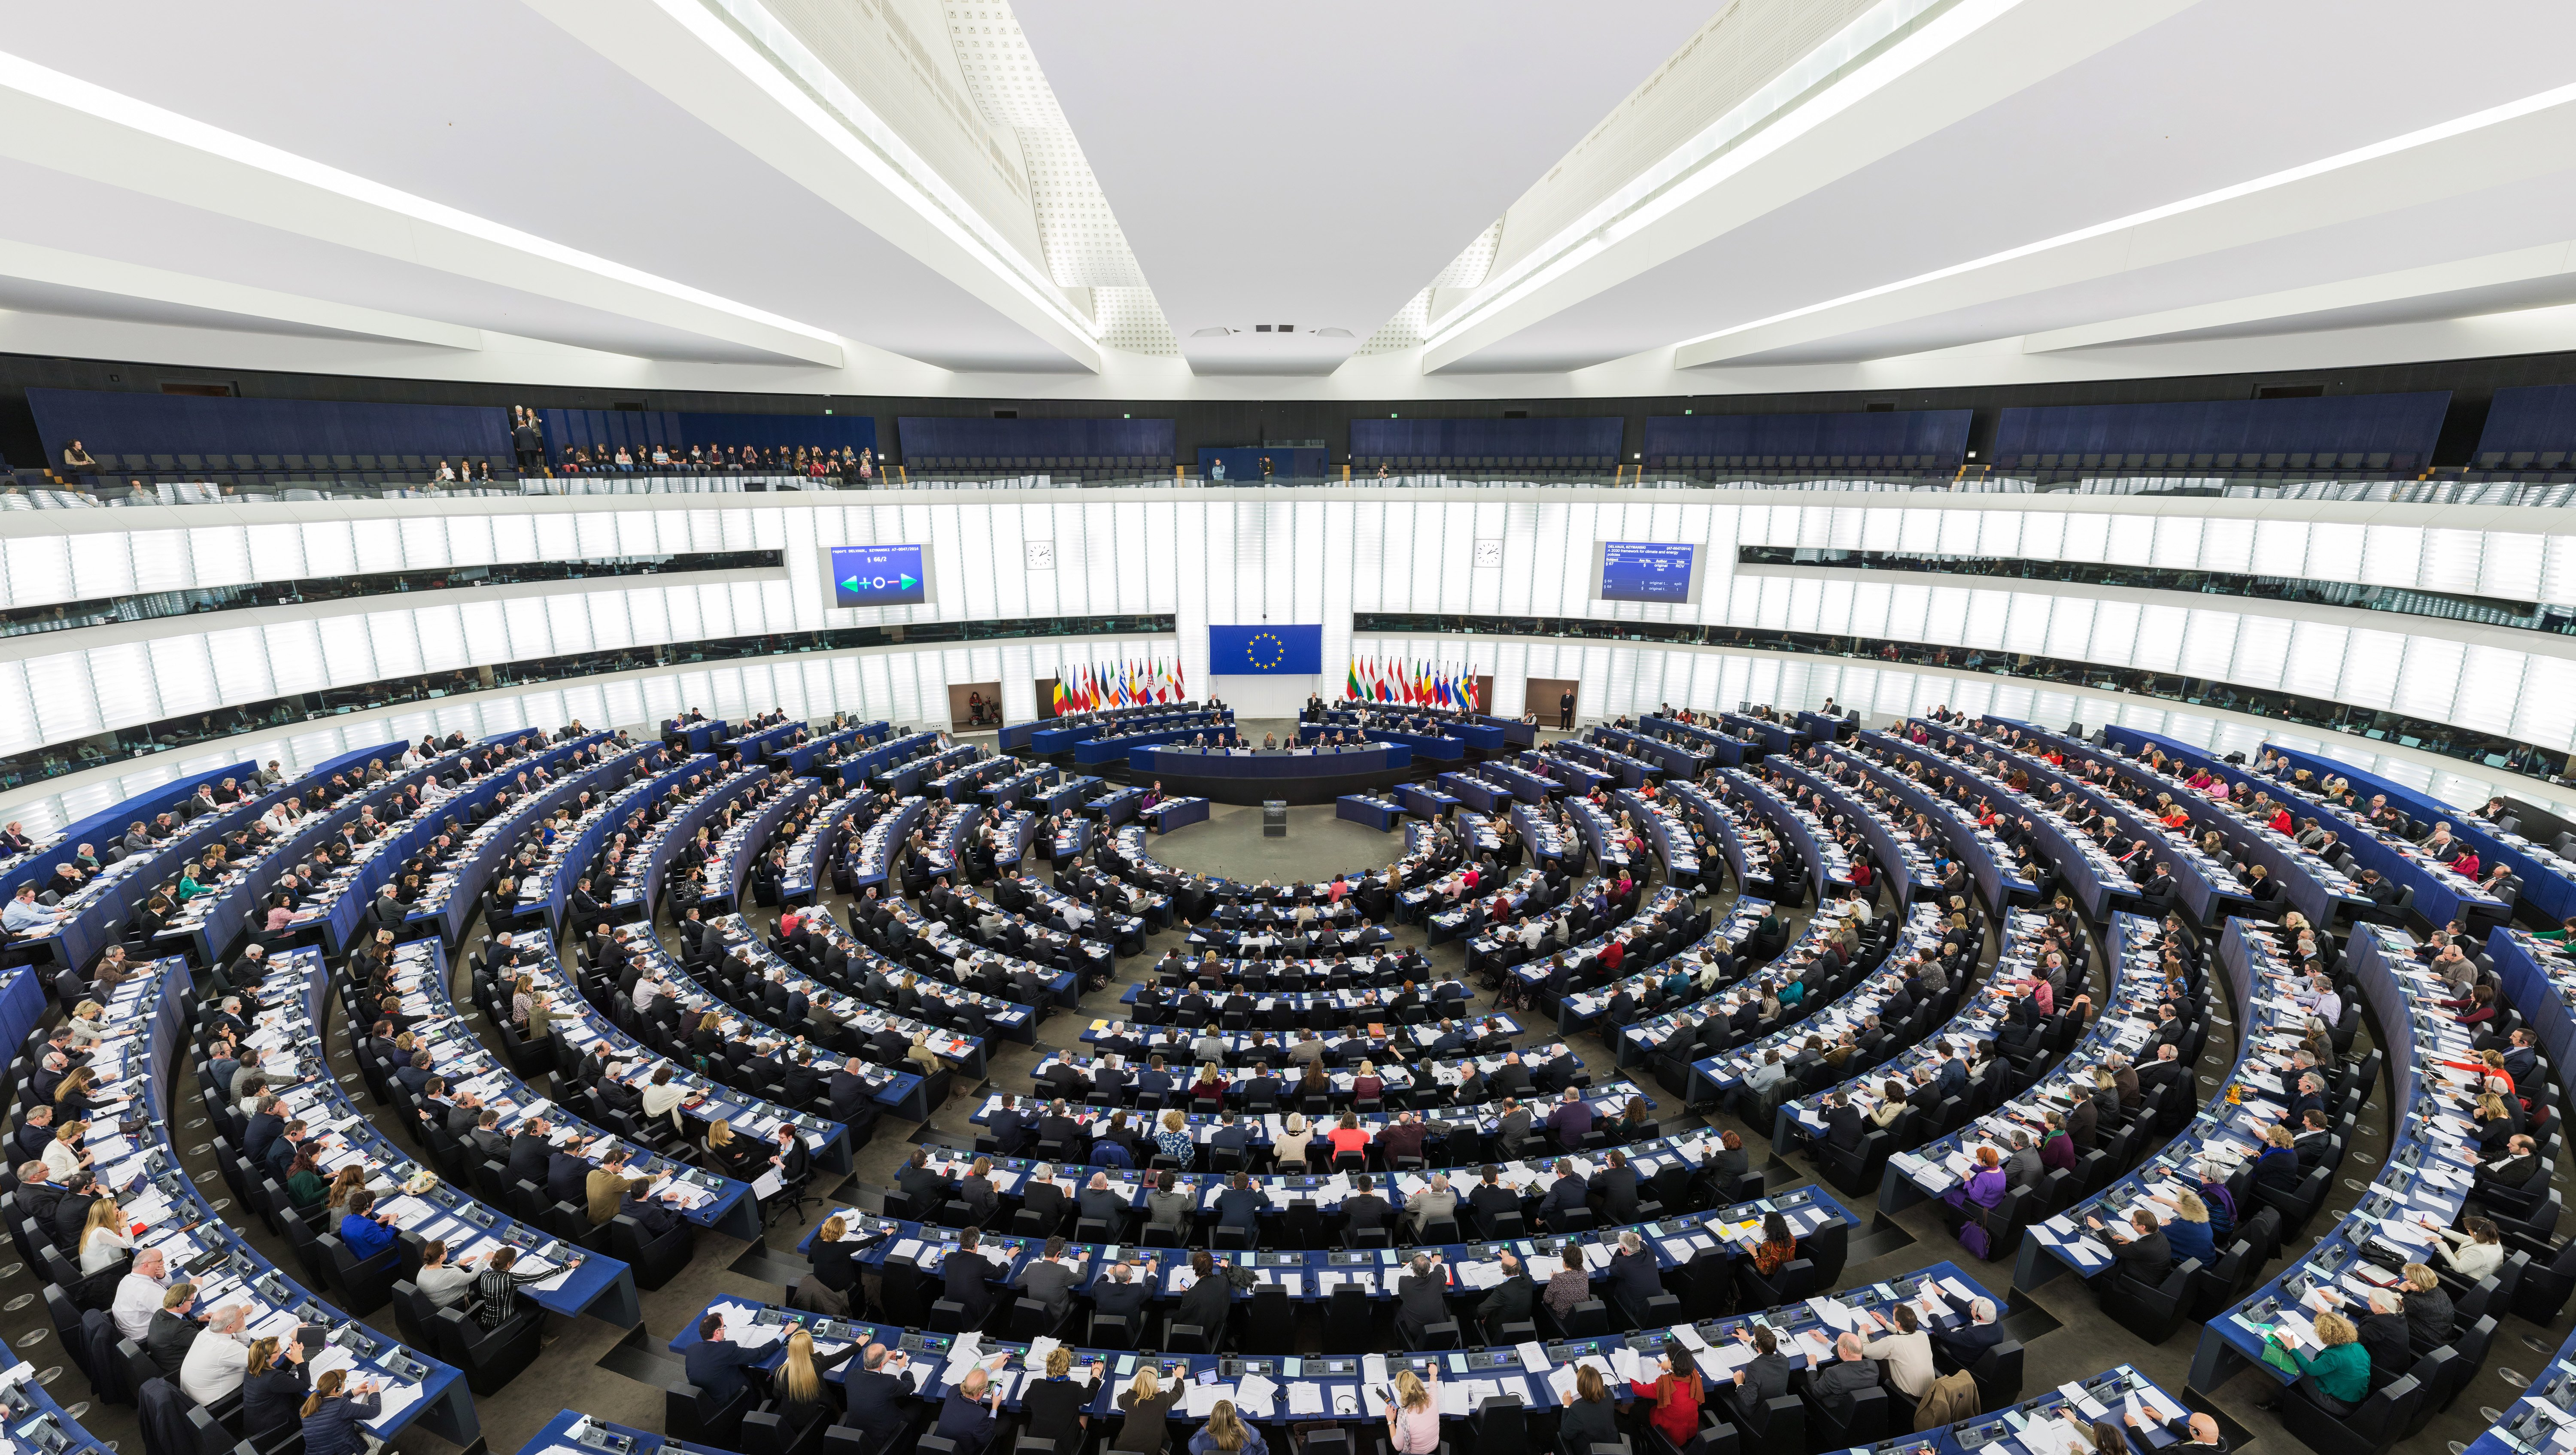 european parliament strasbourg hemicycle   diliff